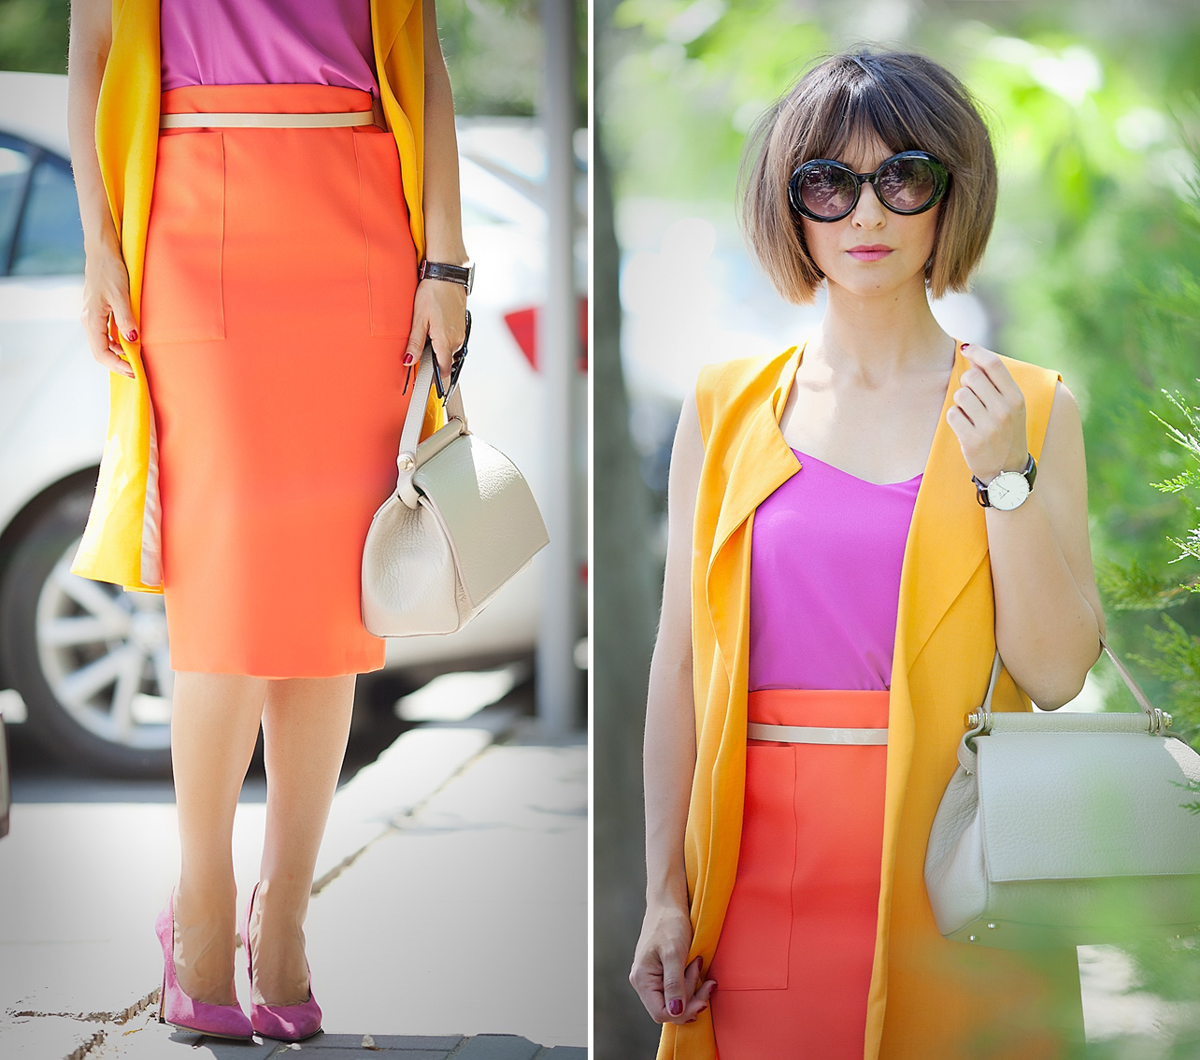 ladylikeoutfit_colorblock_colorblocked_colorblockoutfit_pencilskirt_pencilskirtoutfit_galantgirl